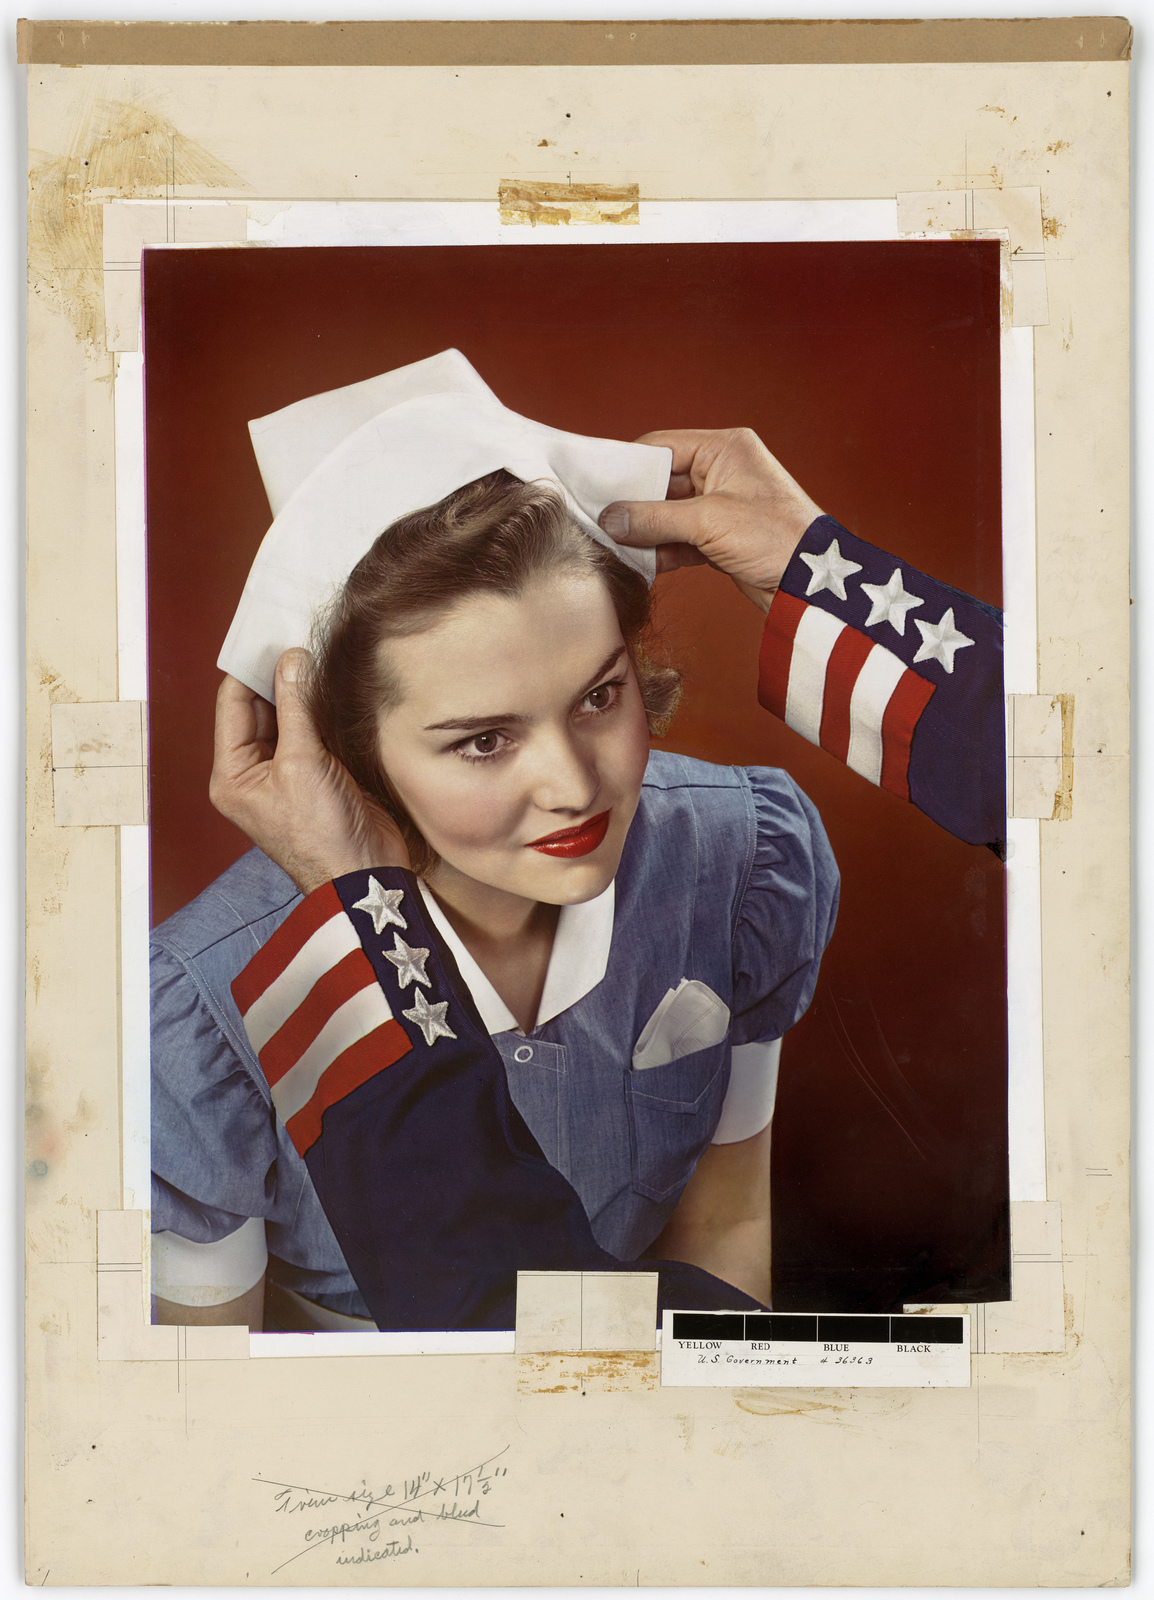 [Nurse having a nurse's cap place on her head] [Victor Keppler]